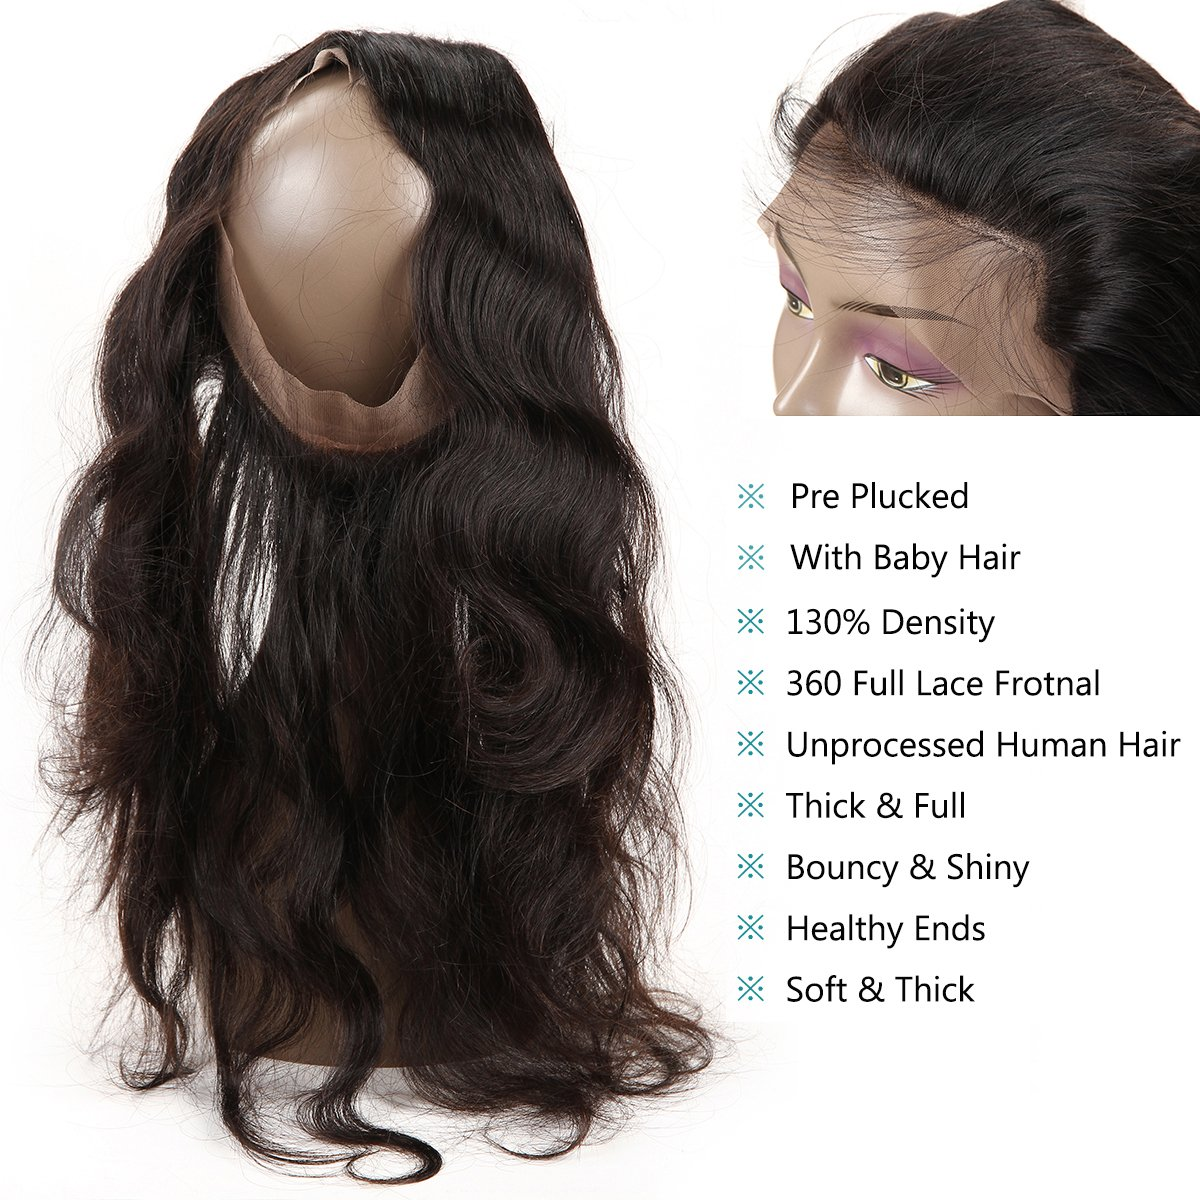 360 Lace Frontal with Bundles Pre Plucked 8A Brazilian Body Wave Virgin Hair Bunldes with 360 Lace Frontal Closure 3 Bundles brazilian hair with frontal Baby Hair (18 20 22+16 360Frontal) by Ashimary (Image #5)